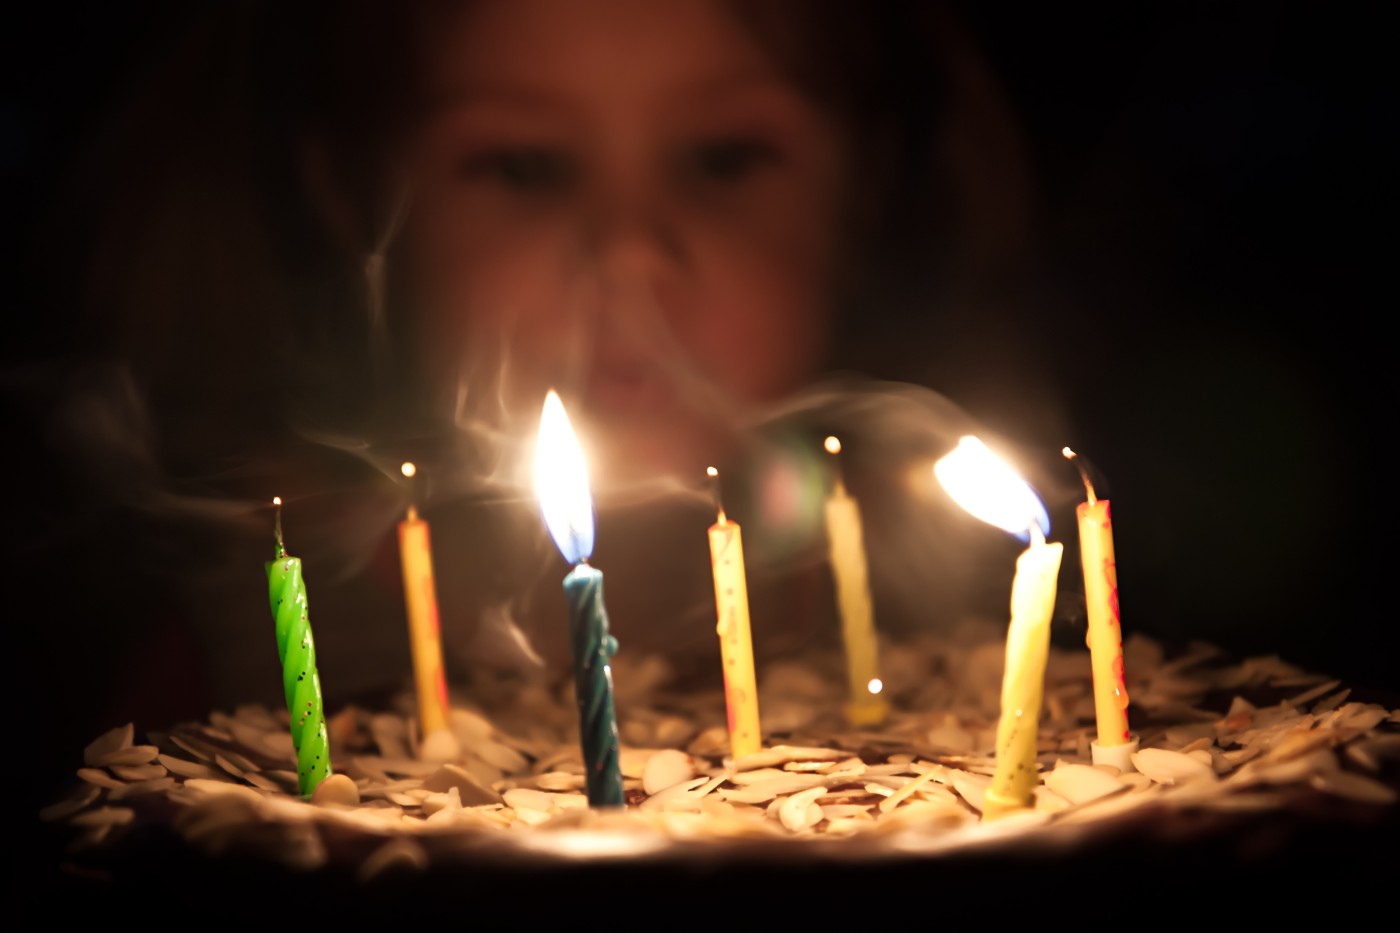 https://tickertapecdn.tdameritrade.com/assets/images/pages/md/Blowing out candles: Technical analysis